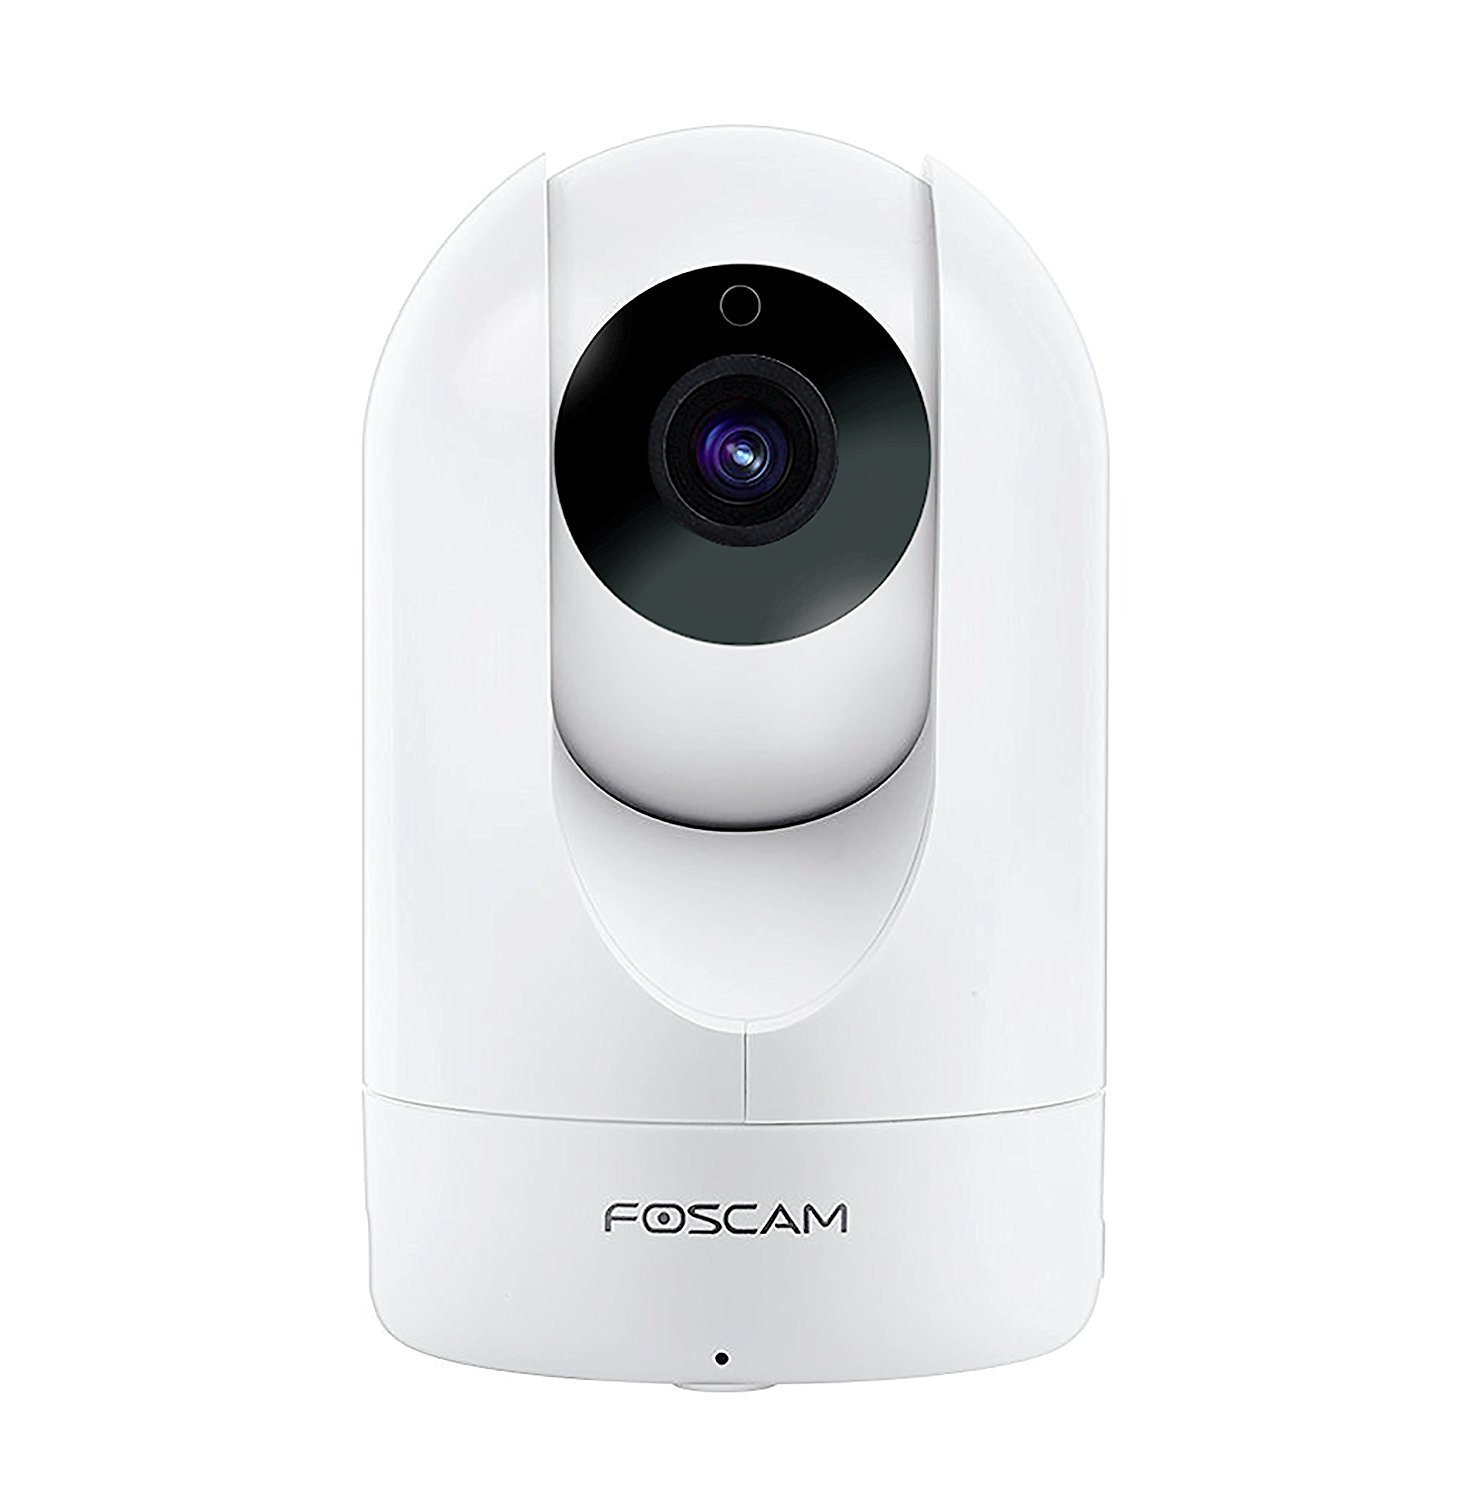 Foscam R2 1080P Pan/Tilt/Zoom SlimSeries WiFi Security Camera - Wide 110° Viewing Angle, Rich Media Push, Enhanced Two-Way Audio, PnP, and More (White)